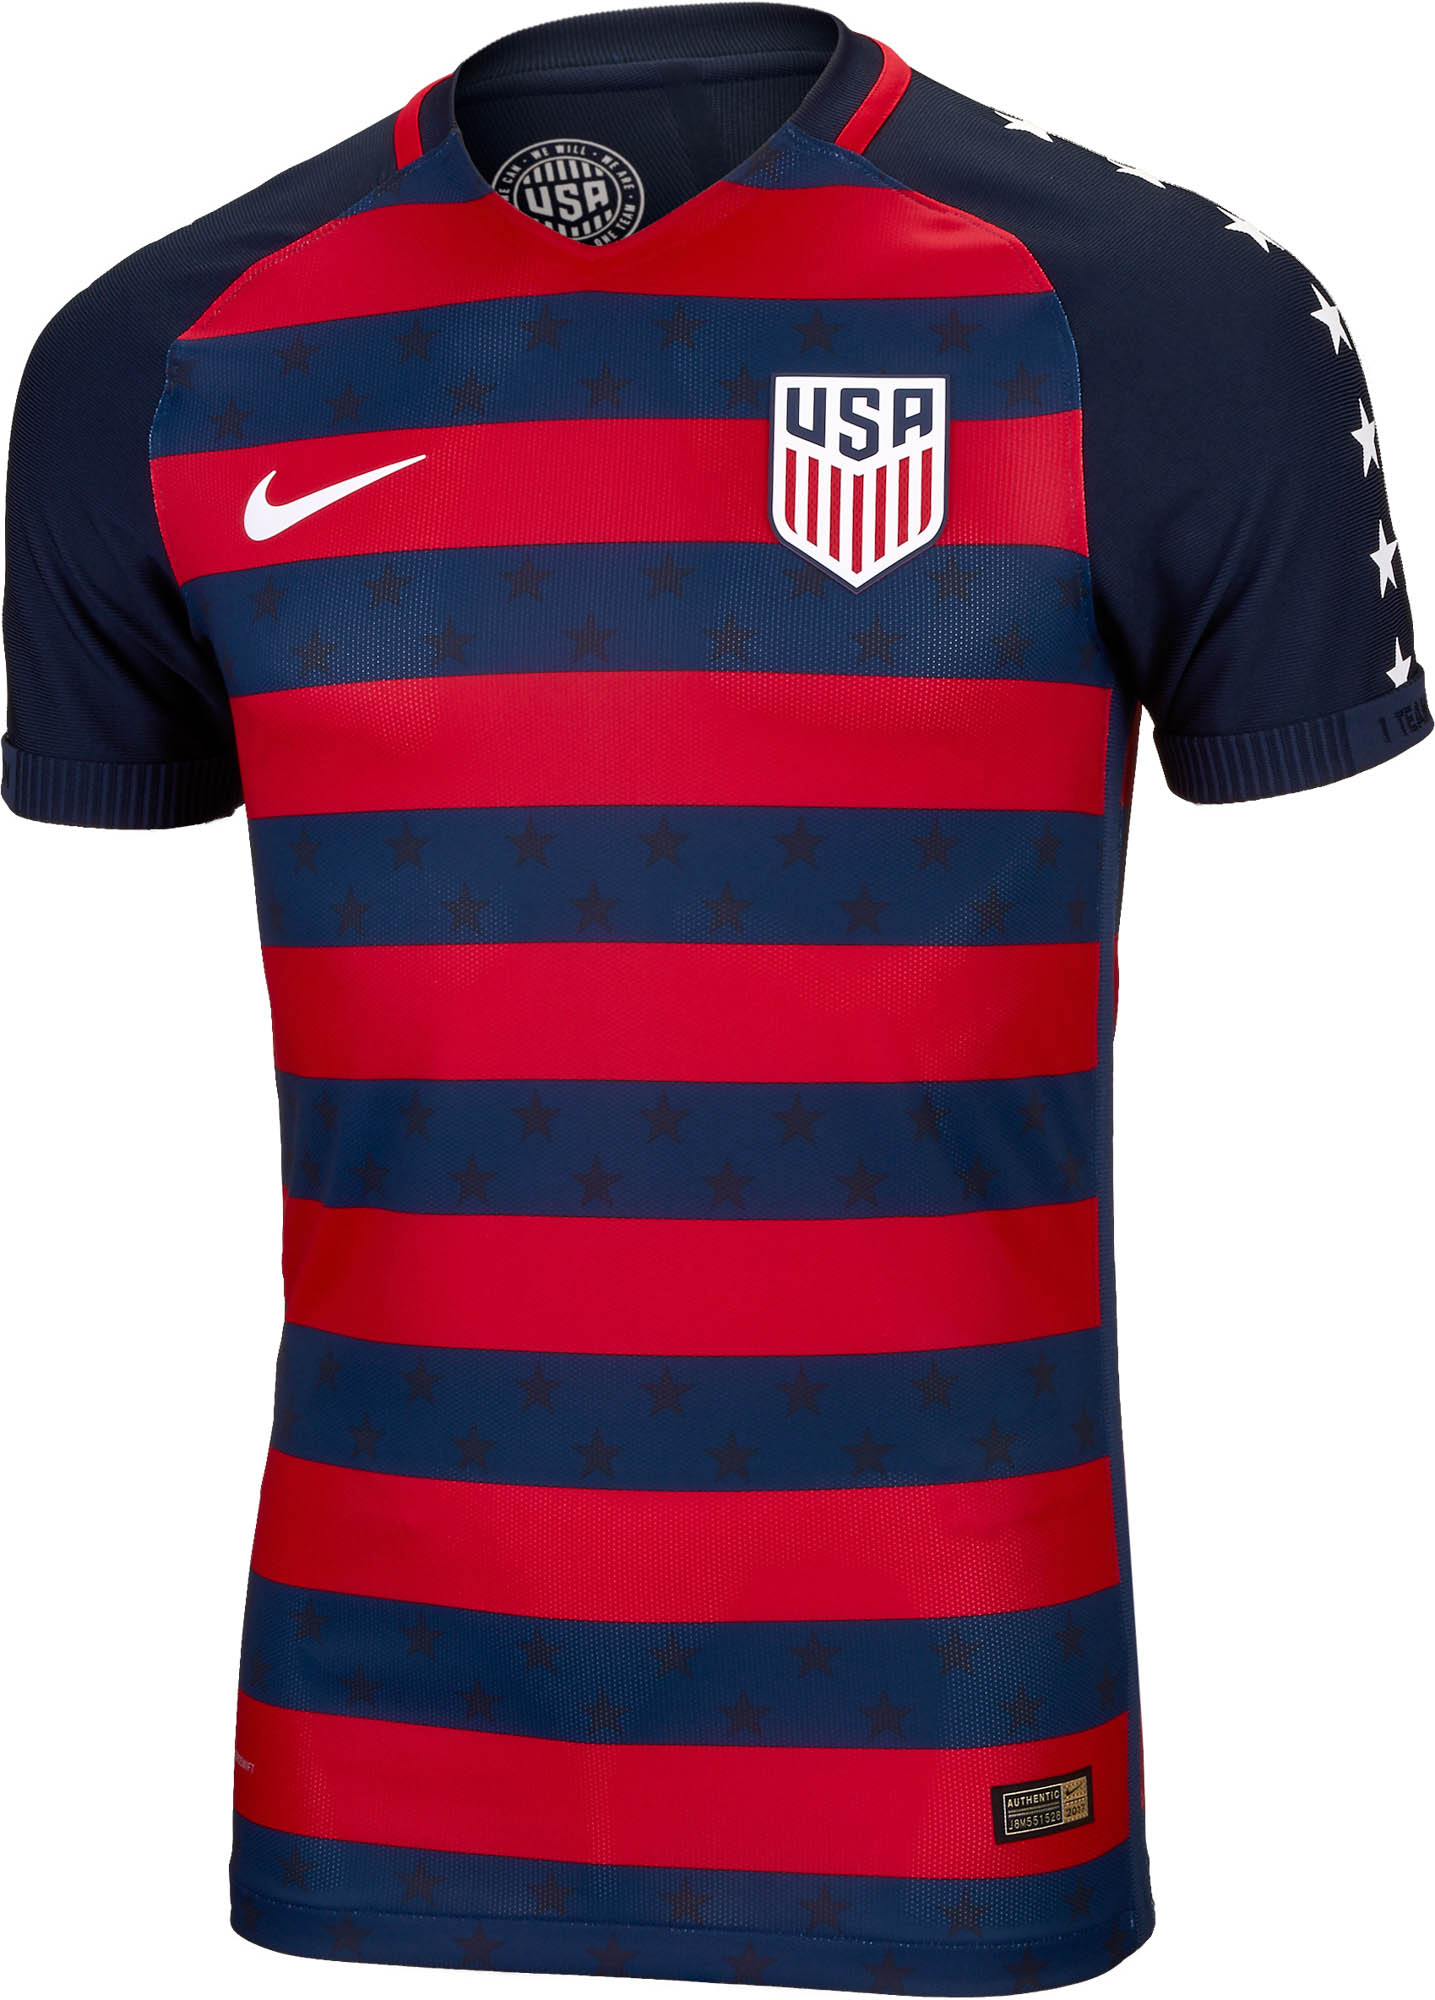 2749132a2 Nike USA Gold Cup Match Jersey 2017 - Soccer Master